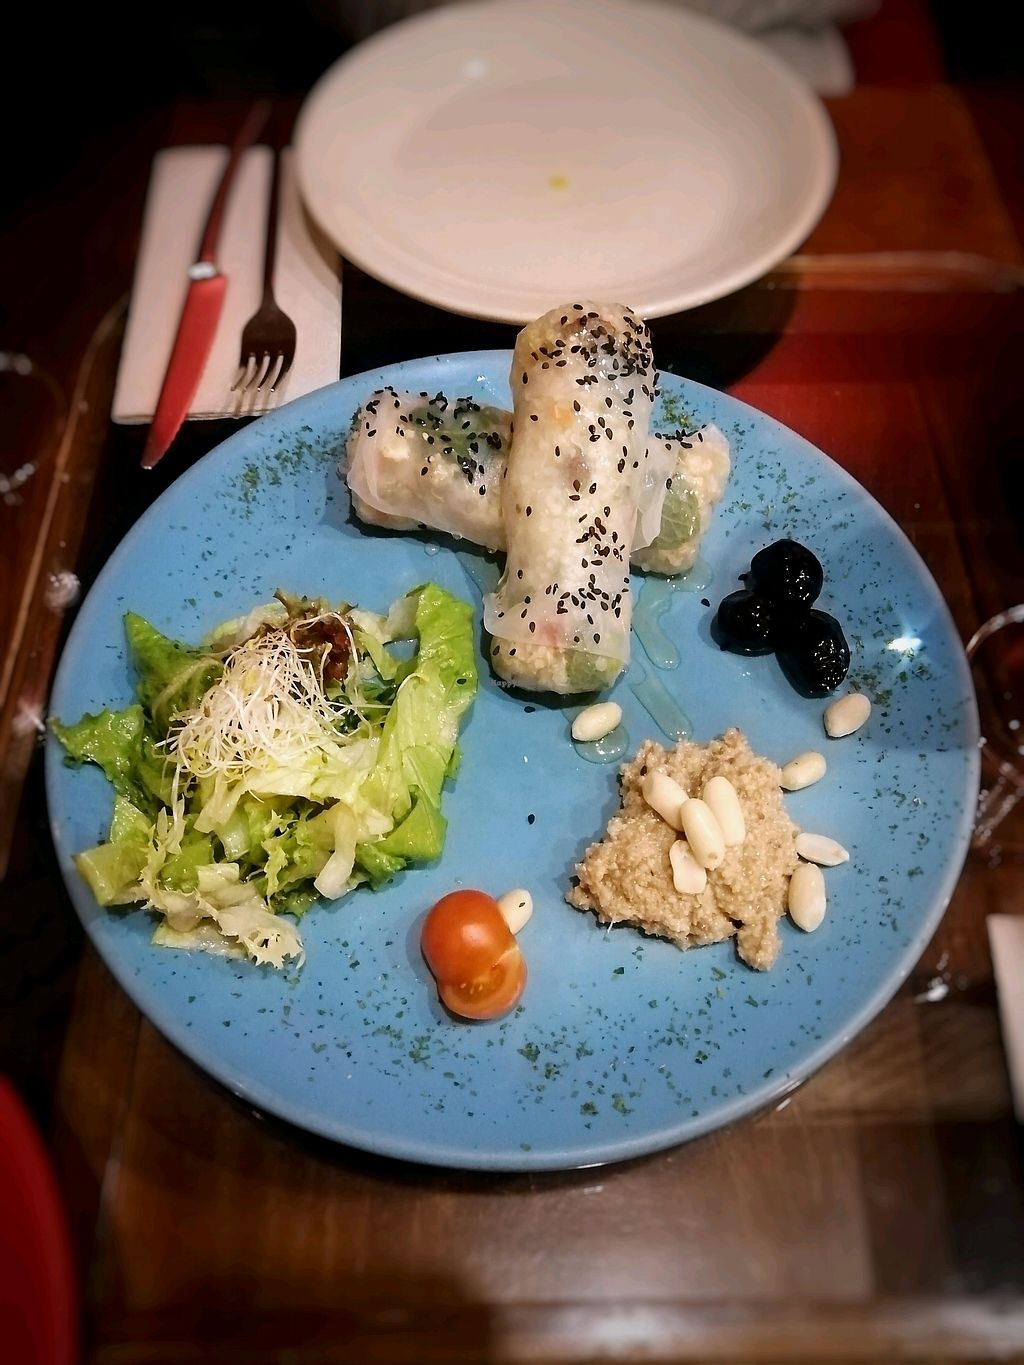 """Photo of Paprika  by <a href=""""/members/profile/Marieke95"""">Marieke95</a> <br/>summer rolls with quinoa <br/> April 15, 2018  - <a href='/contact/abuse/image/26256/386514'>Report</a>"""